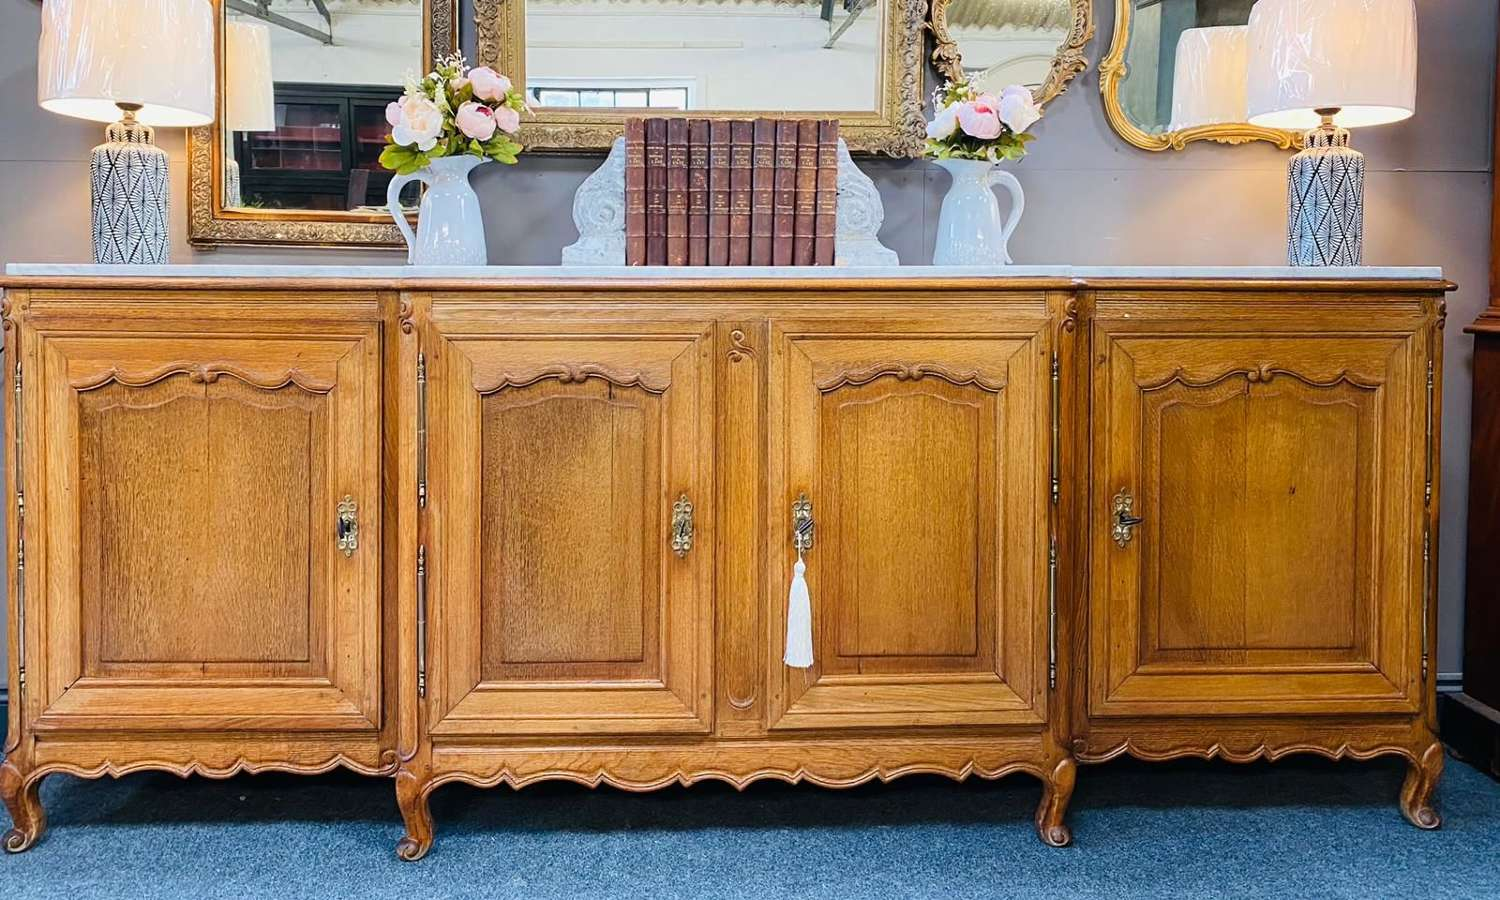 Antique French oak sideboard with white Carrara marble top